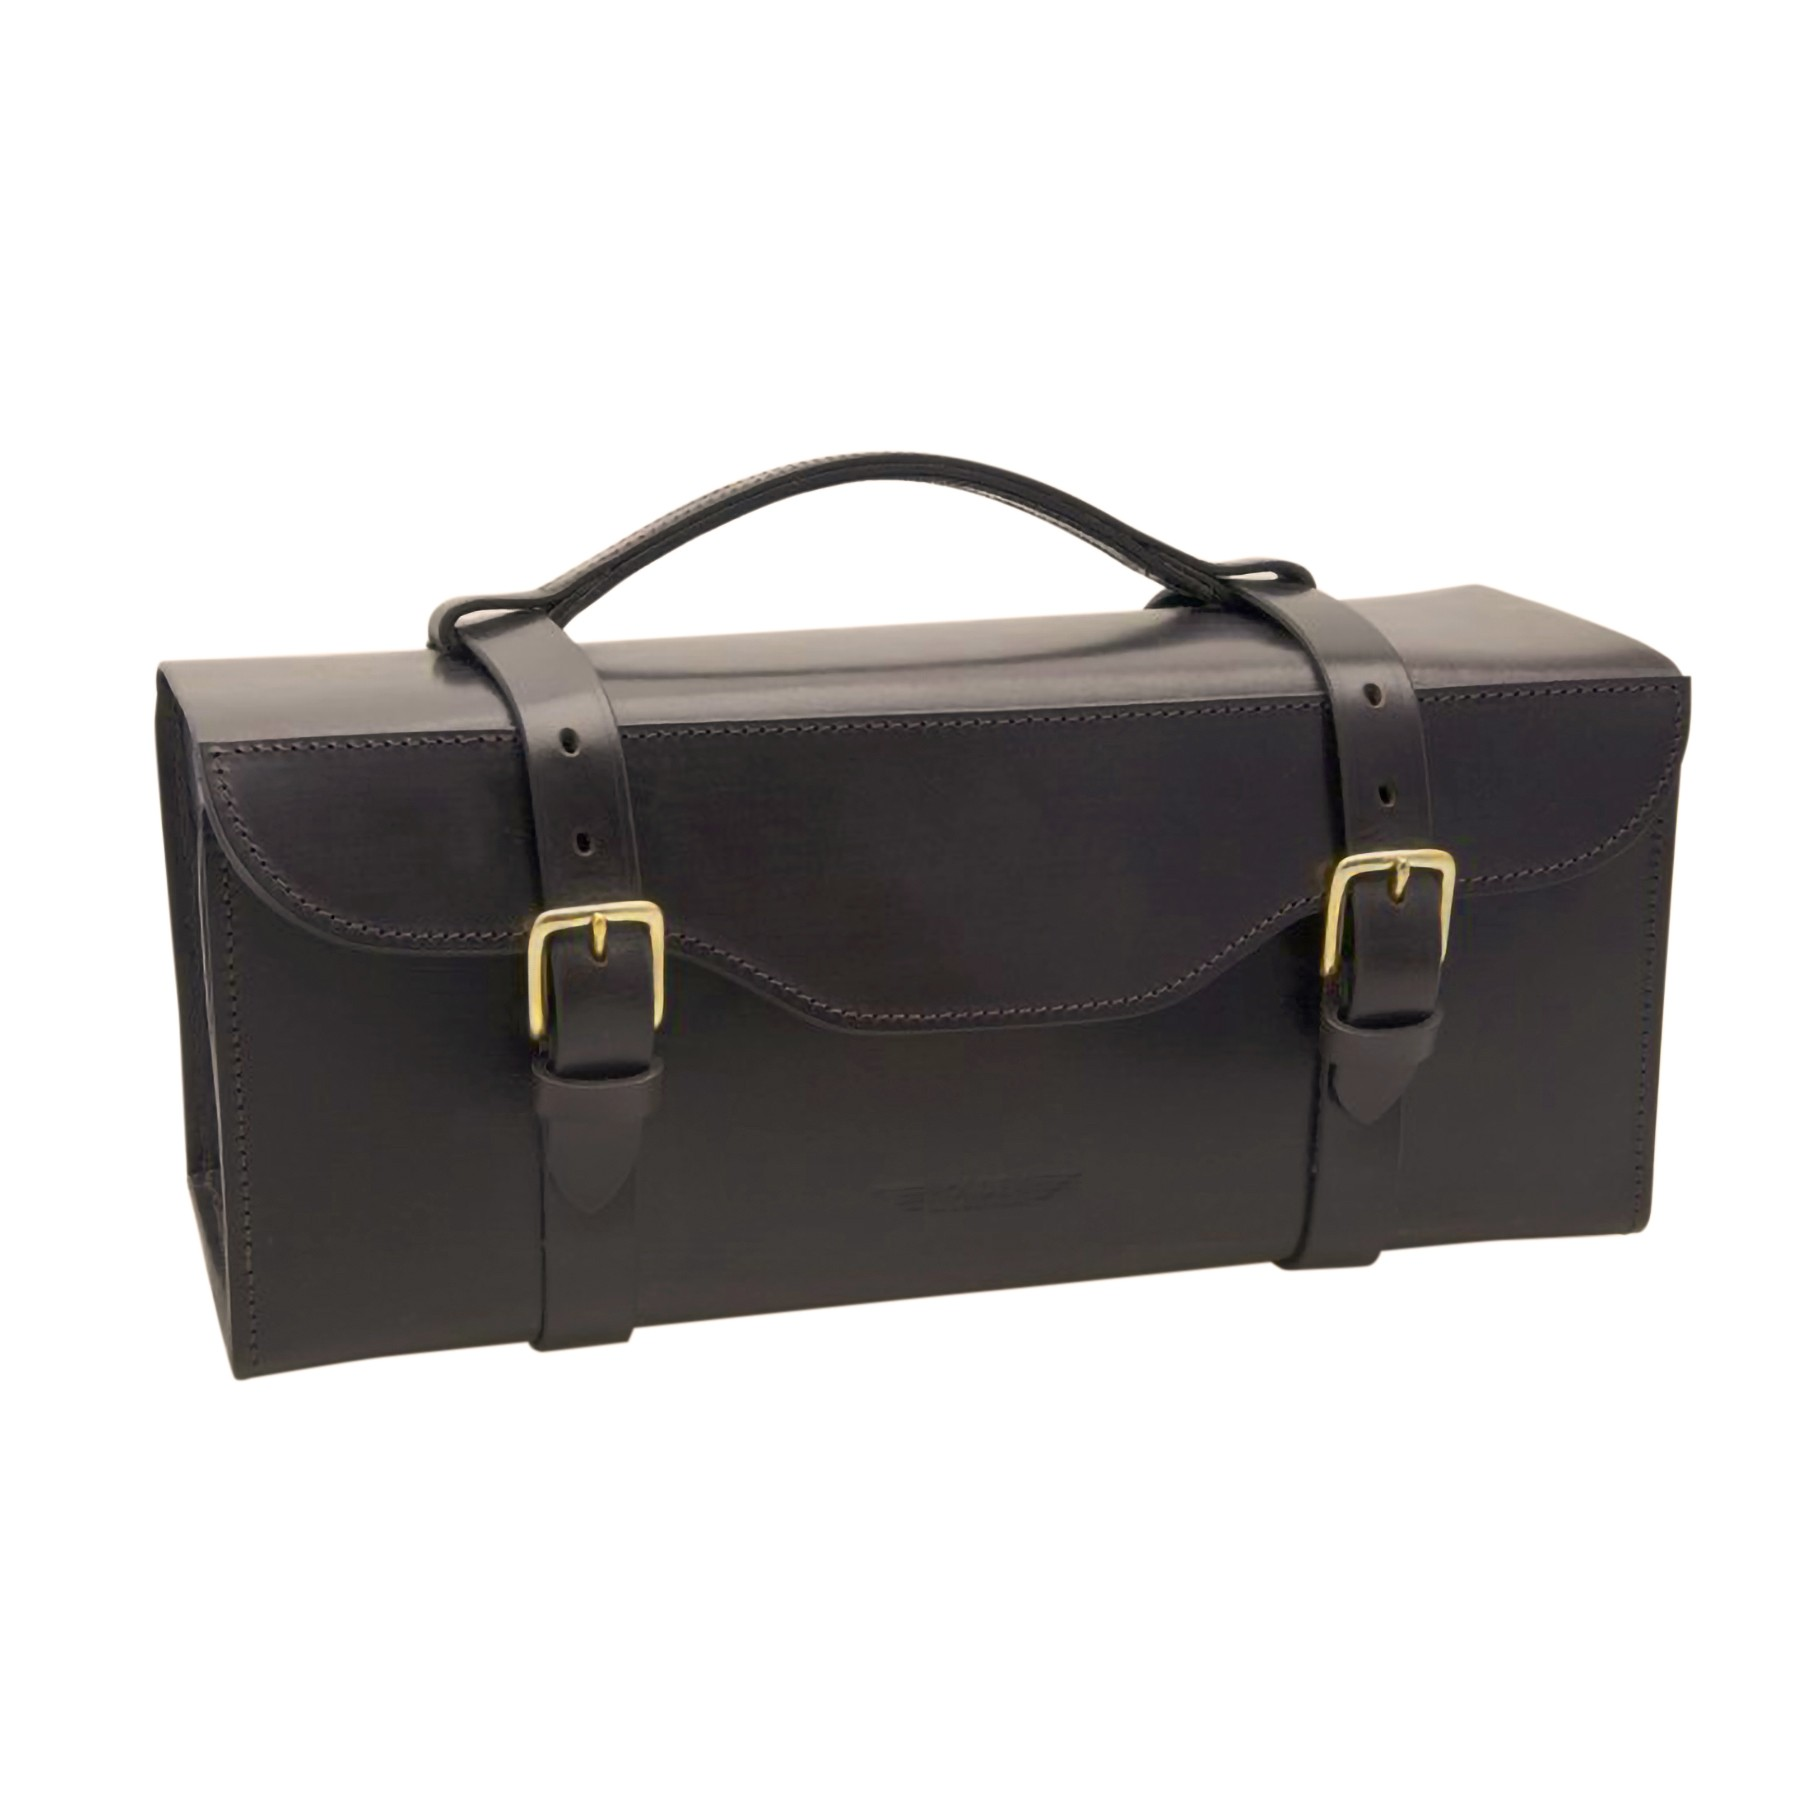 Leather Toolbag - DeLuxe image #4